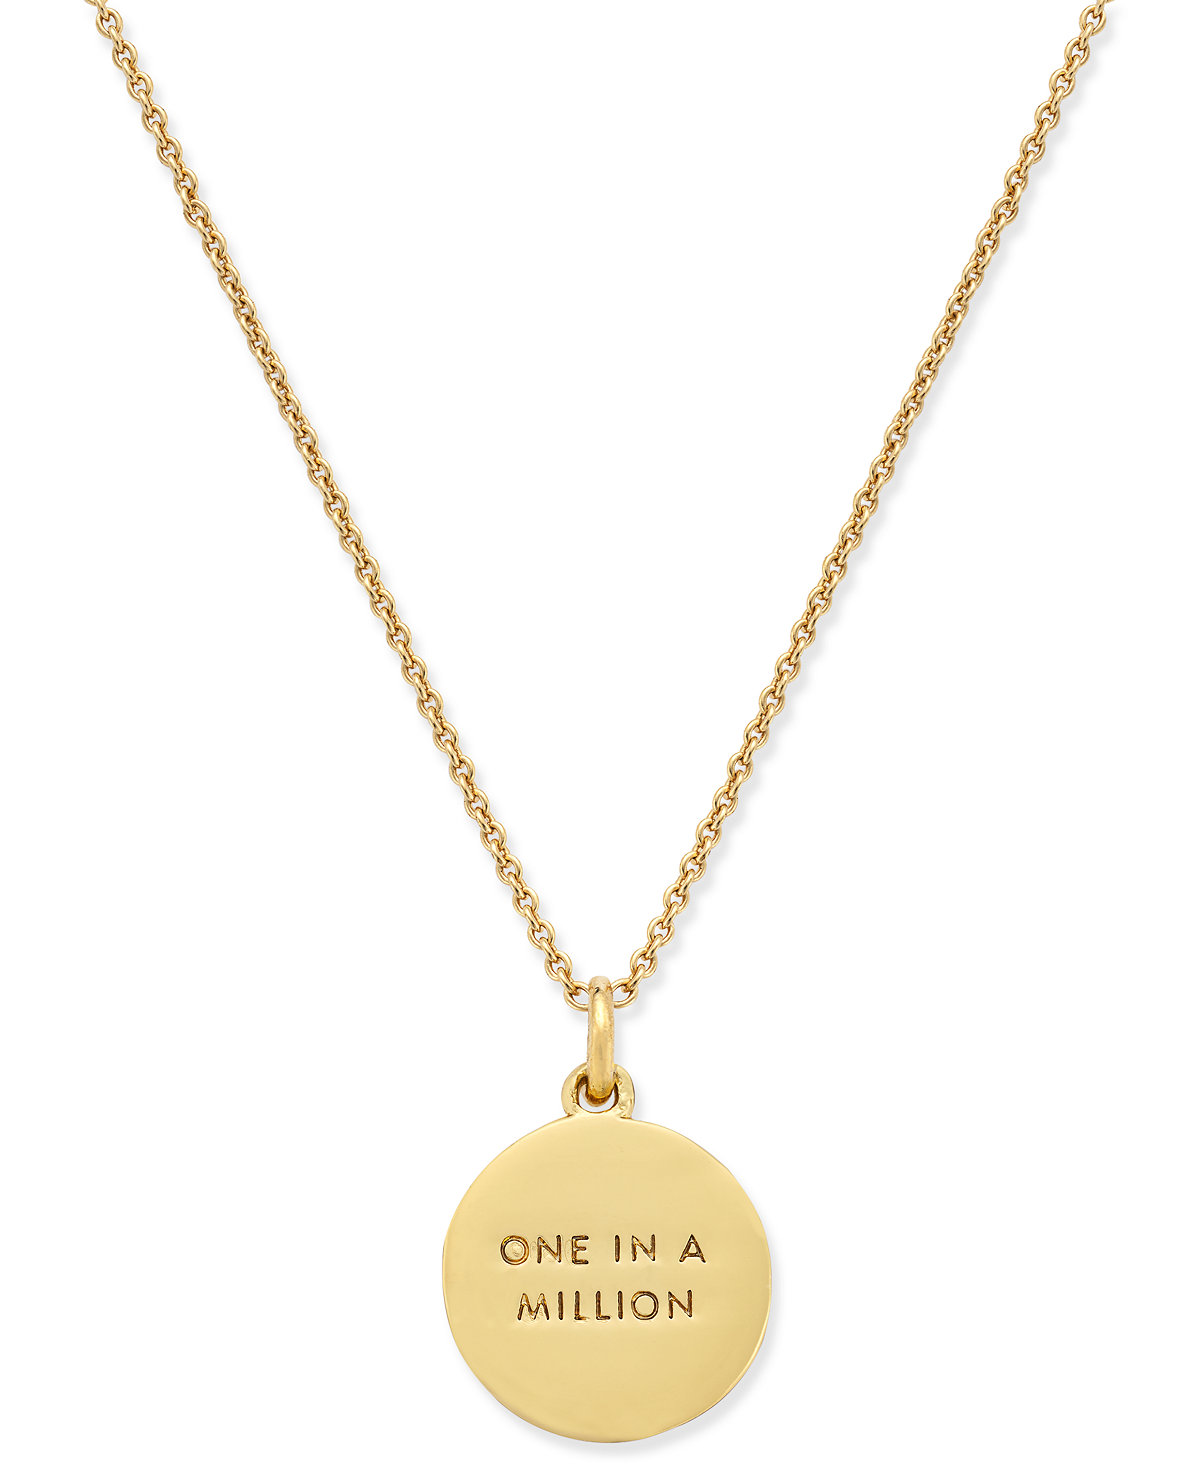 kate spade new york 12k GoldPlated Initials Pendant Necklace back $58